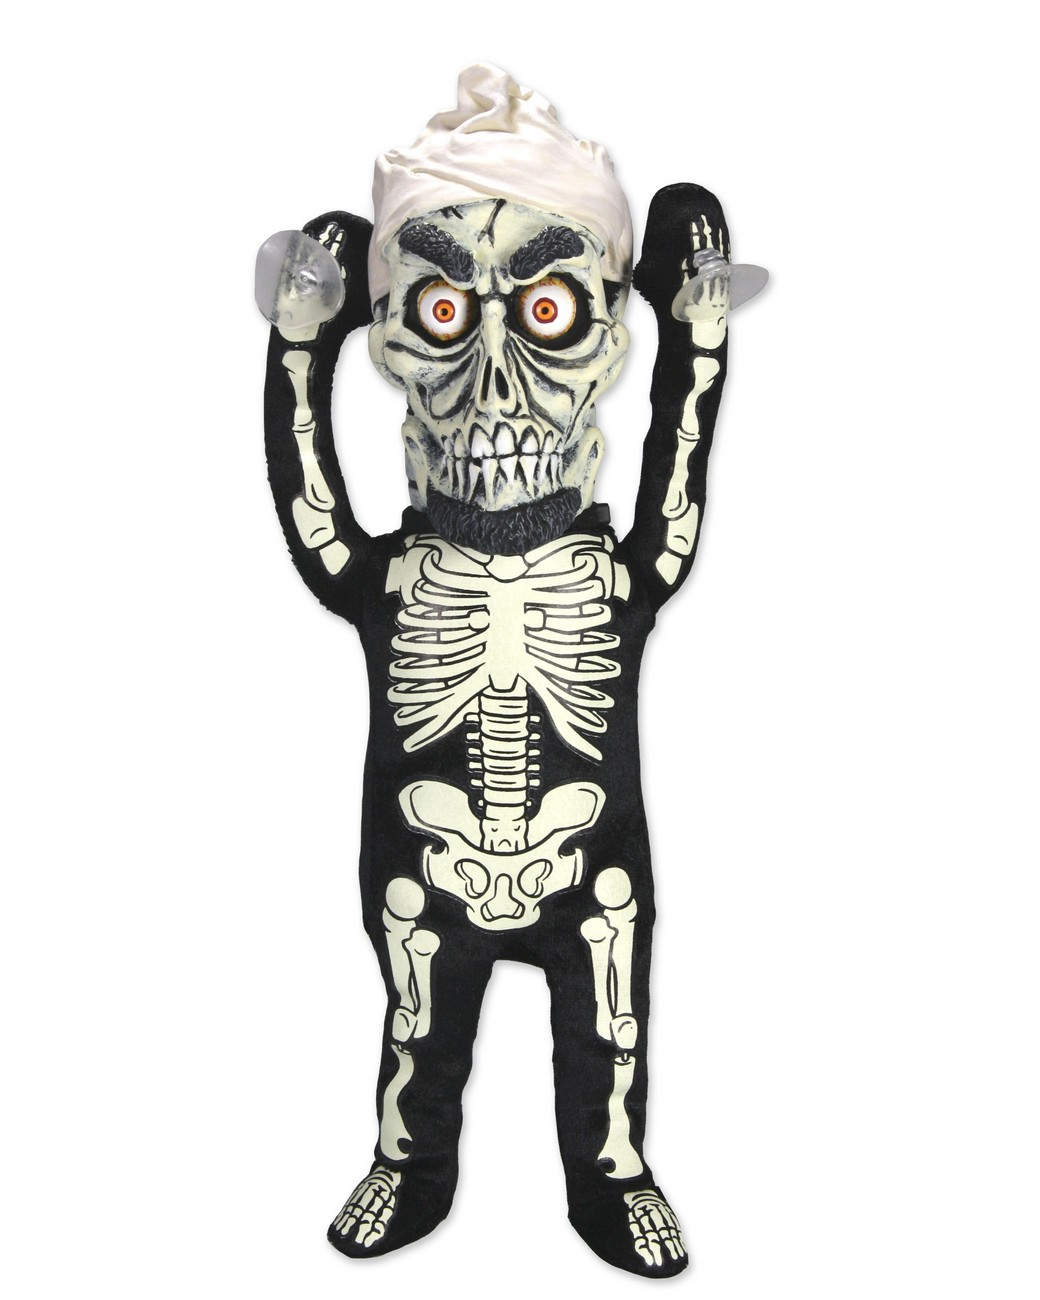 Jeff dunham plush window cling achmed for Achmed the dead terrorist halloween decoration